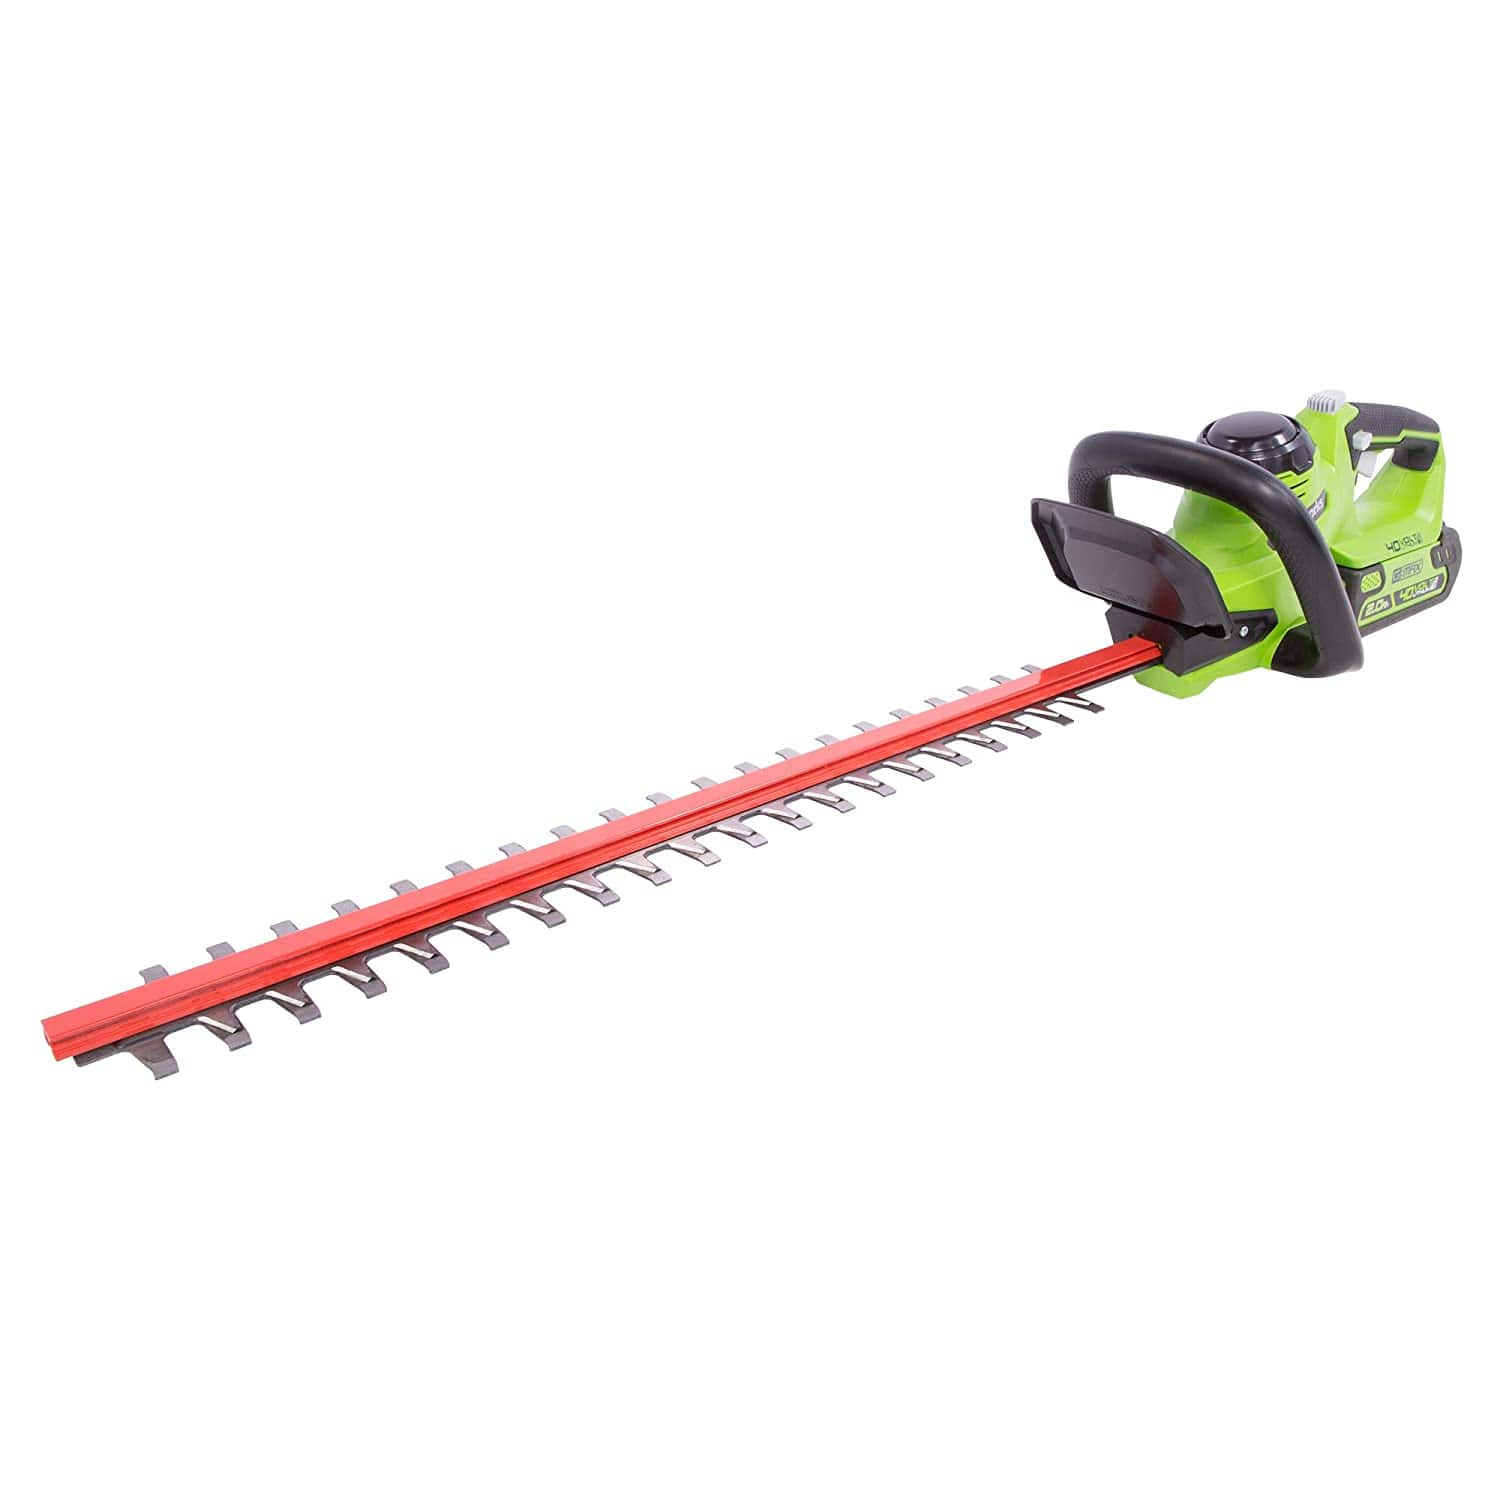 [Today Only] Greenworks 24-Inch 40V Cordless Hedge Trimmer, 2Ah Battery for $119.96 + Free Shippinh $119.94